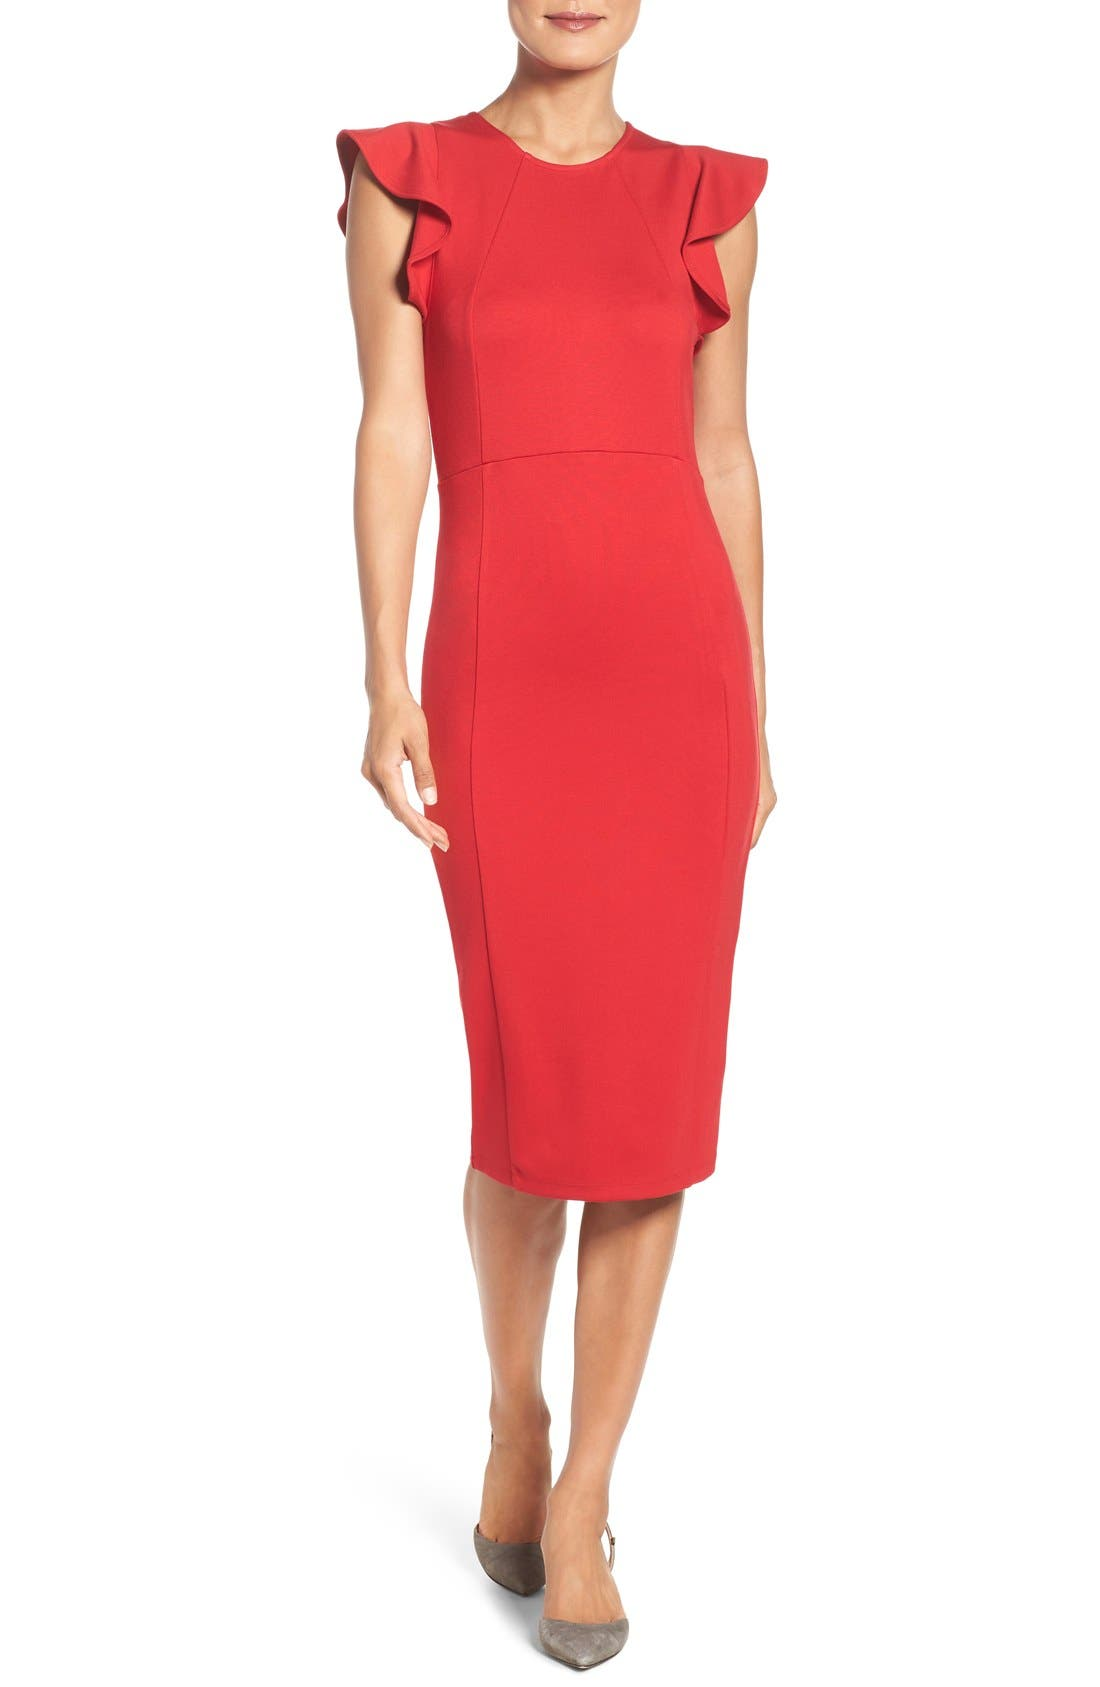 Felicity & Coco Ruffle Sheath Dress (Regular & Petite) (Nordstrom Exclusive)